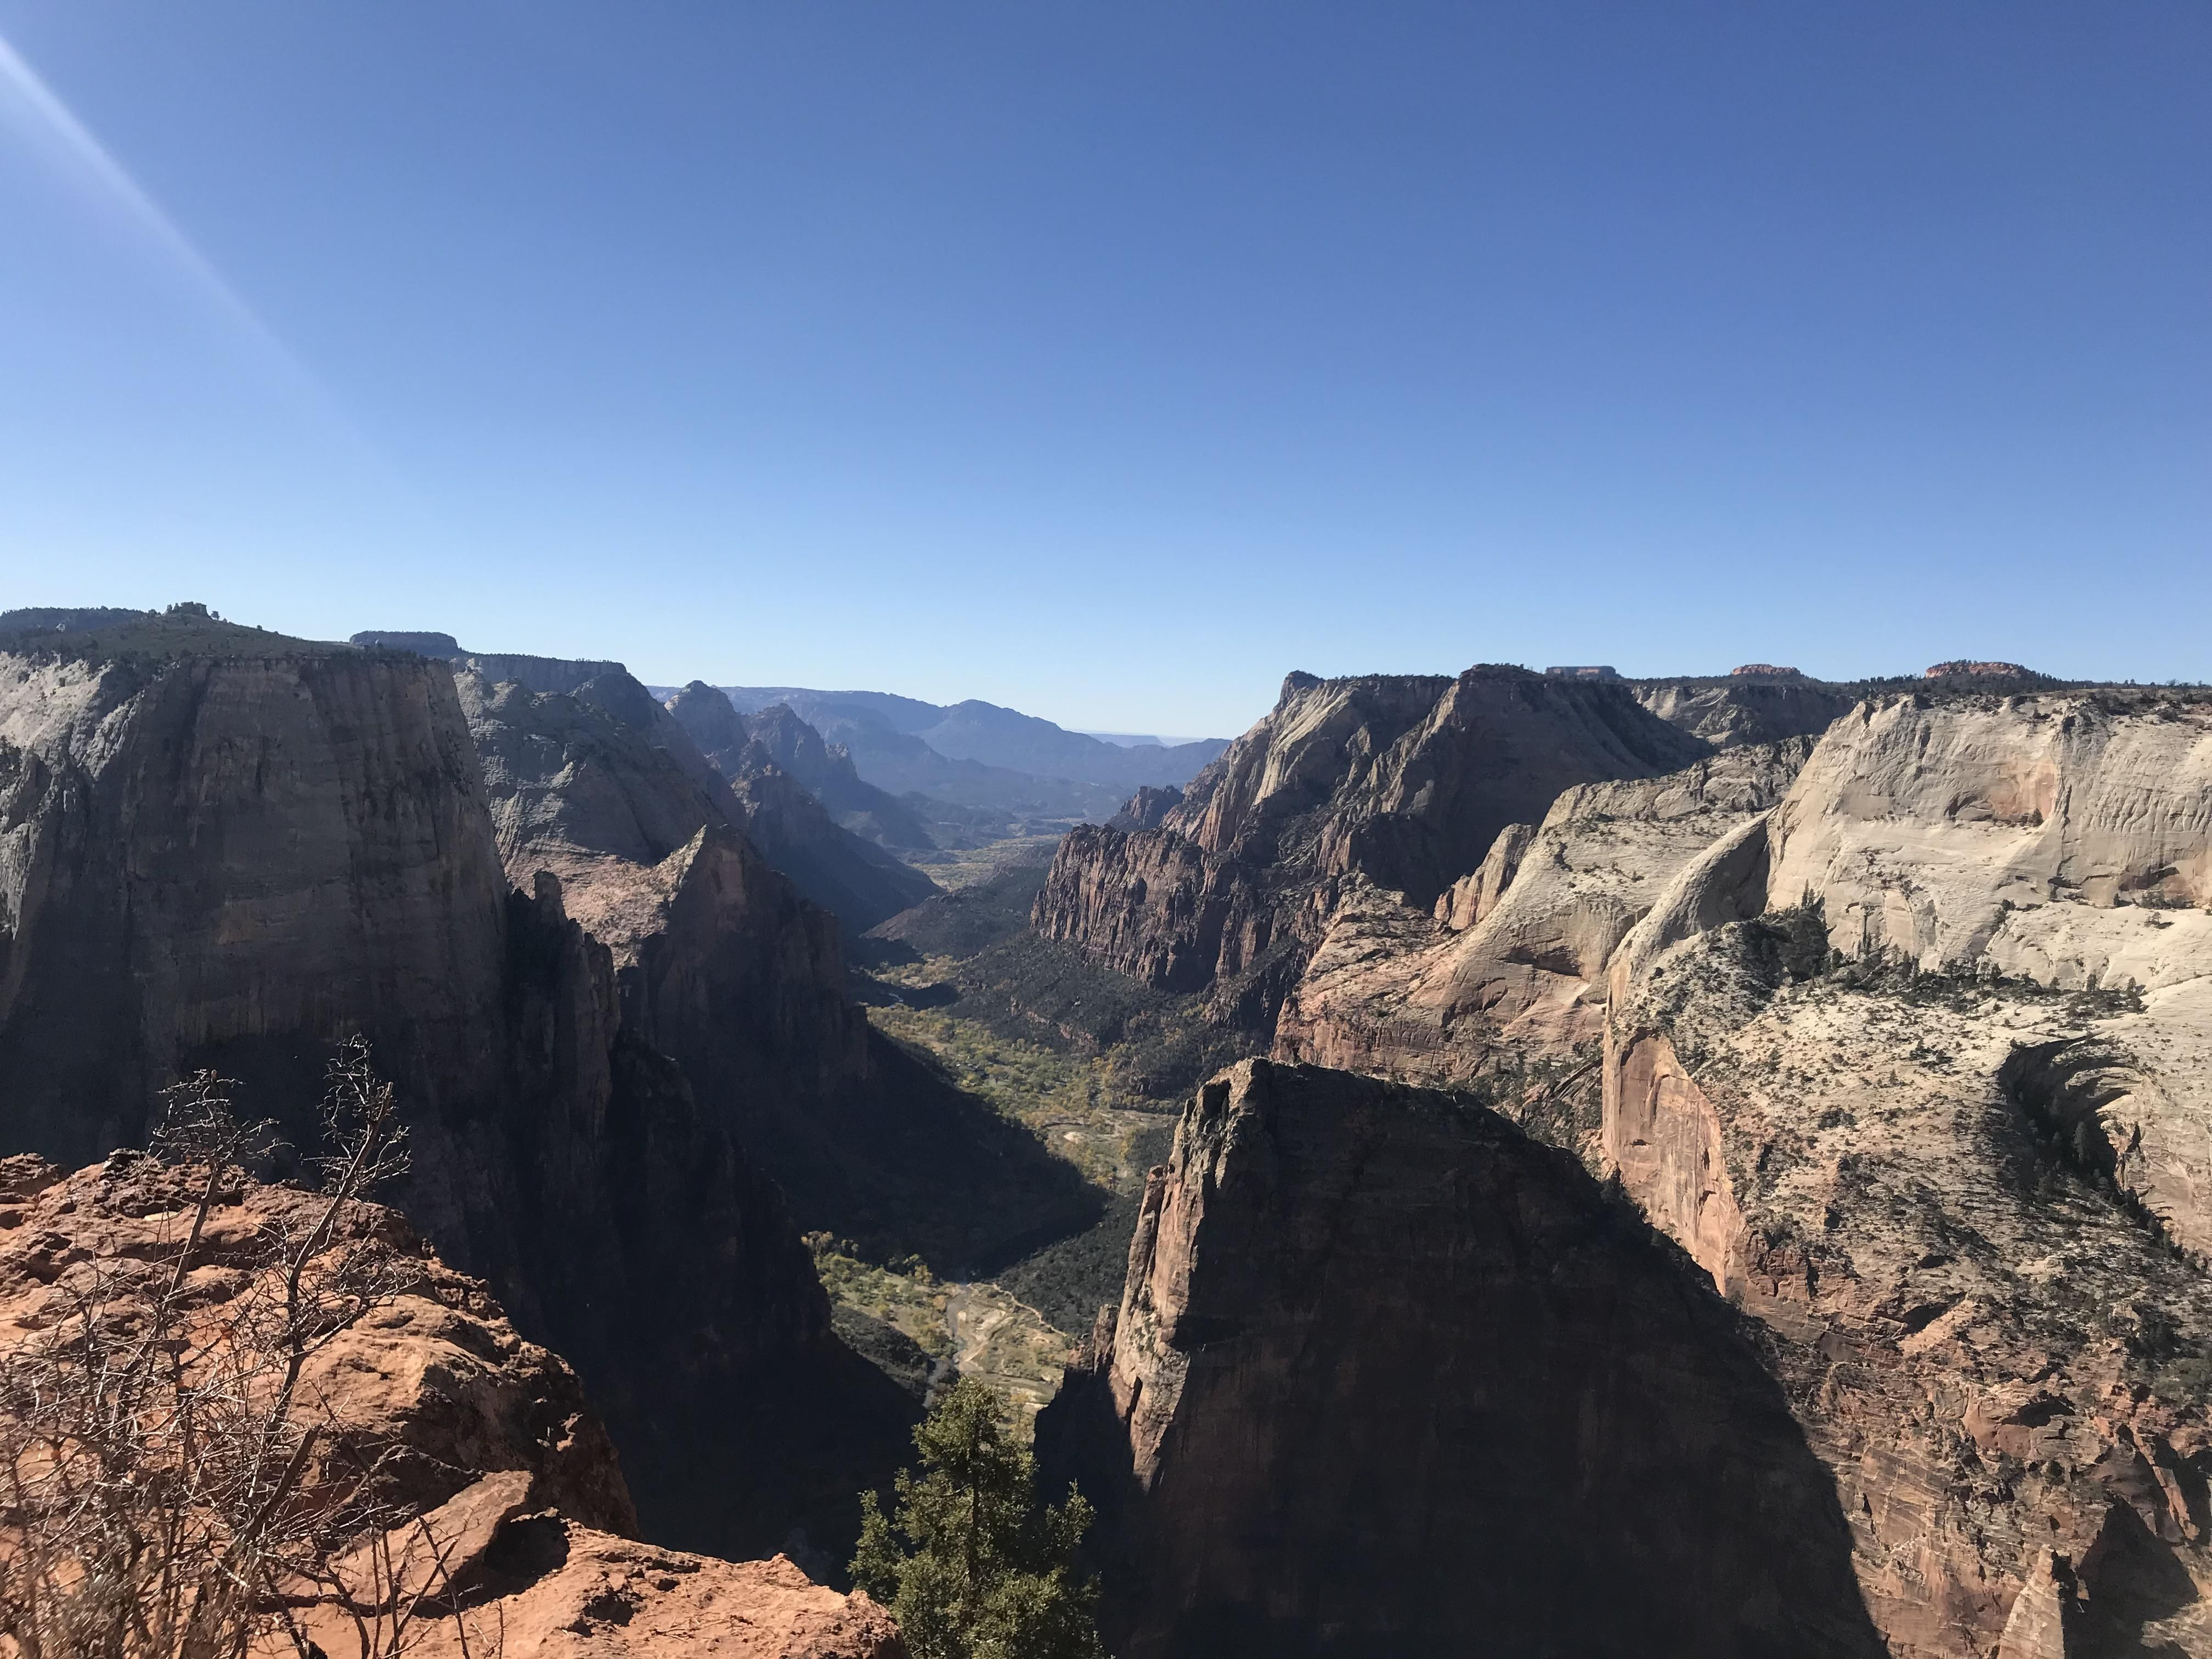 Hiked To Observation Point Zion National Park Utah This Morning